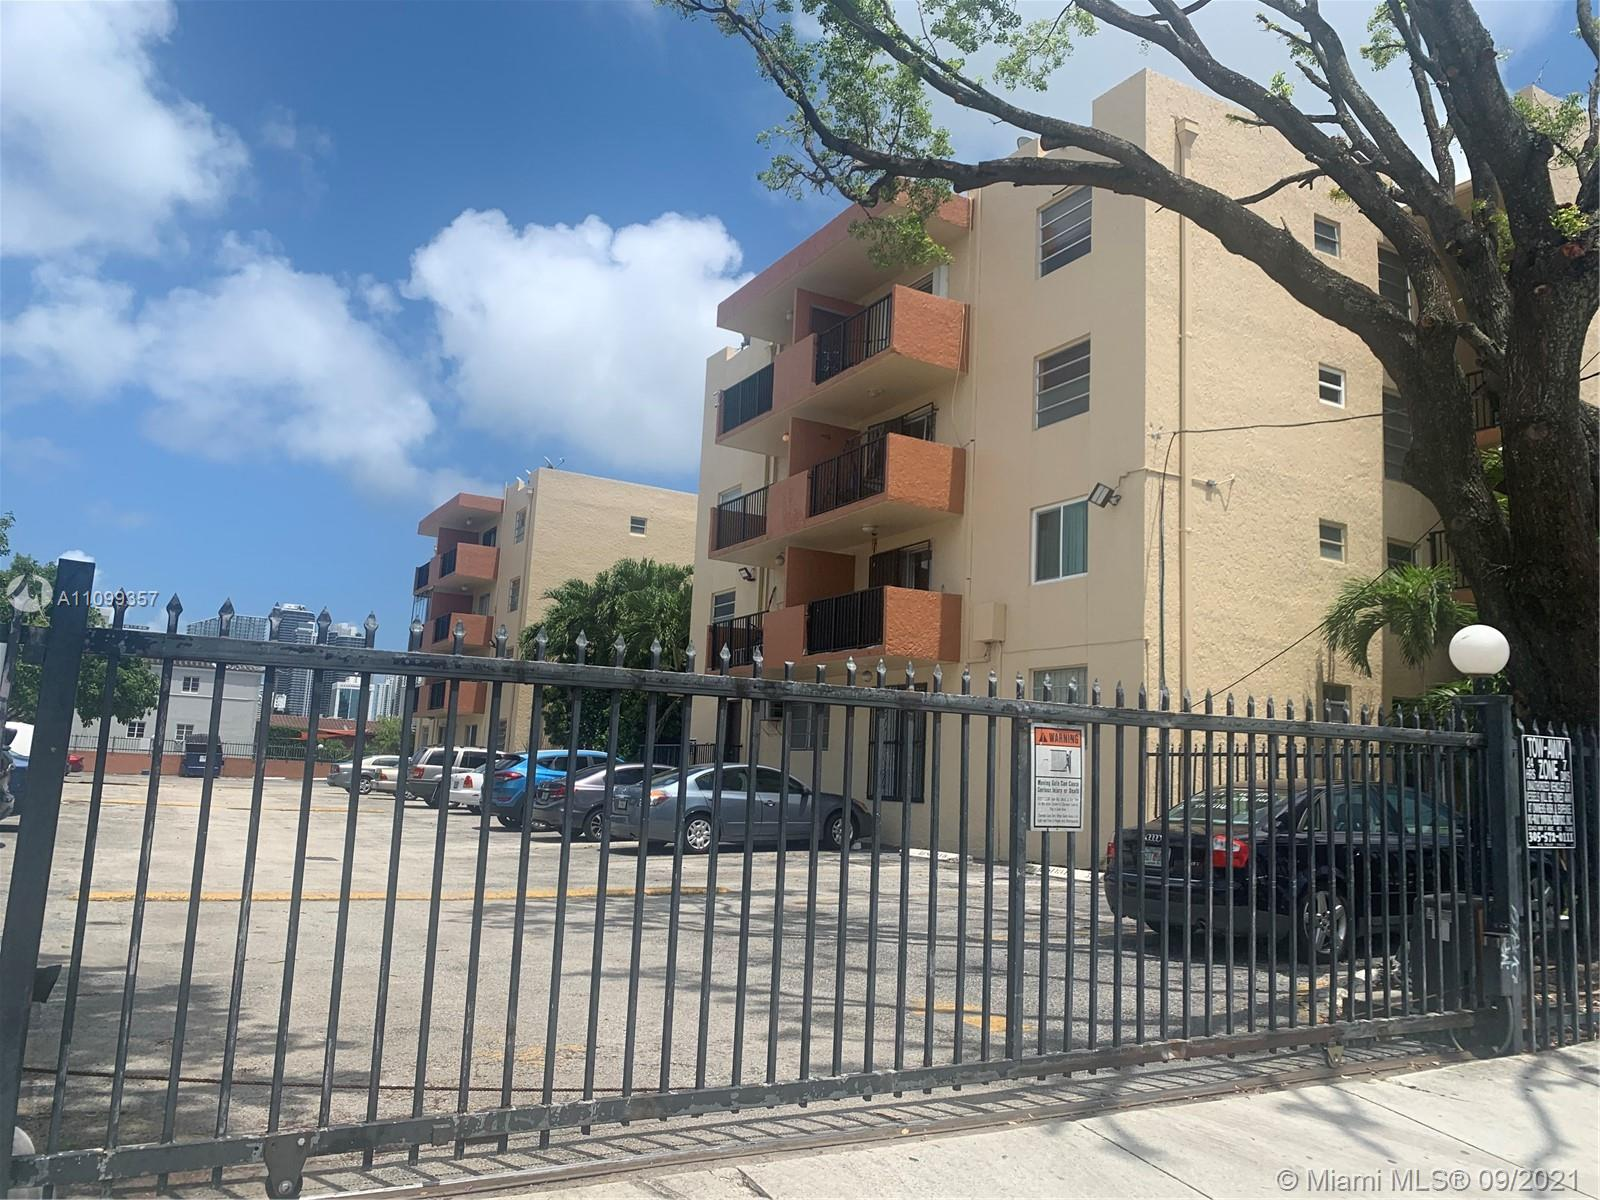 Location , Location, close to Trendiest Calle 8 ,Brickell. Gated building with cameras in parking lot. clean and quiet. Unit totally remodeled with new kitchen cabinet.wide space in walking closet and comfortable vanity in the vestier area. Laundry facility in the first floor. Future tenant will fall in love. Association approval in three weeks. Unit will be ready to move in on October 15th.Appoitments to  show only Wednesday and Saturday. Tenant has to submit proof of income, score of credit report and last landlord references.